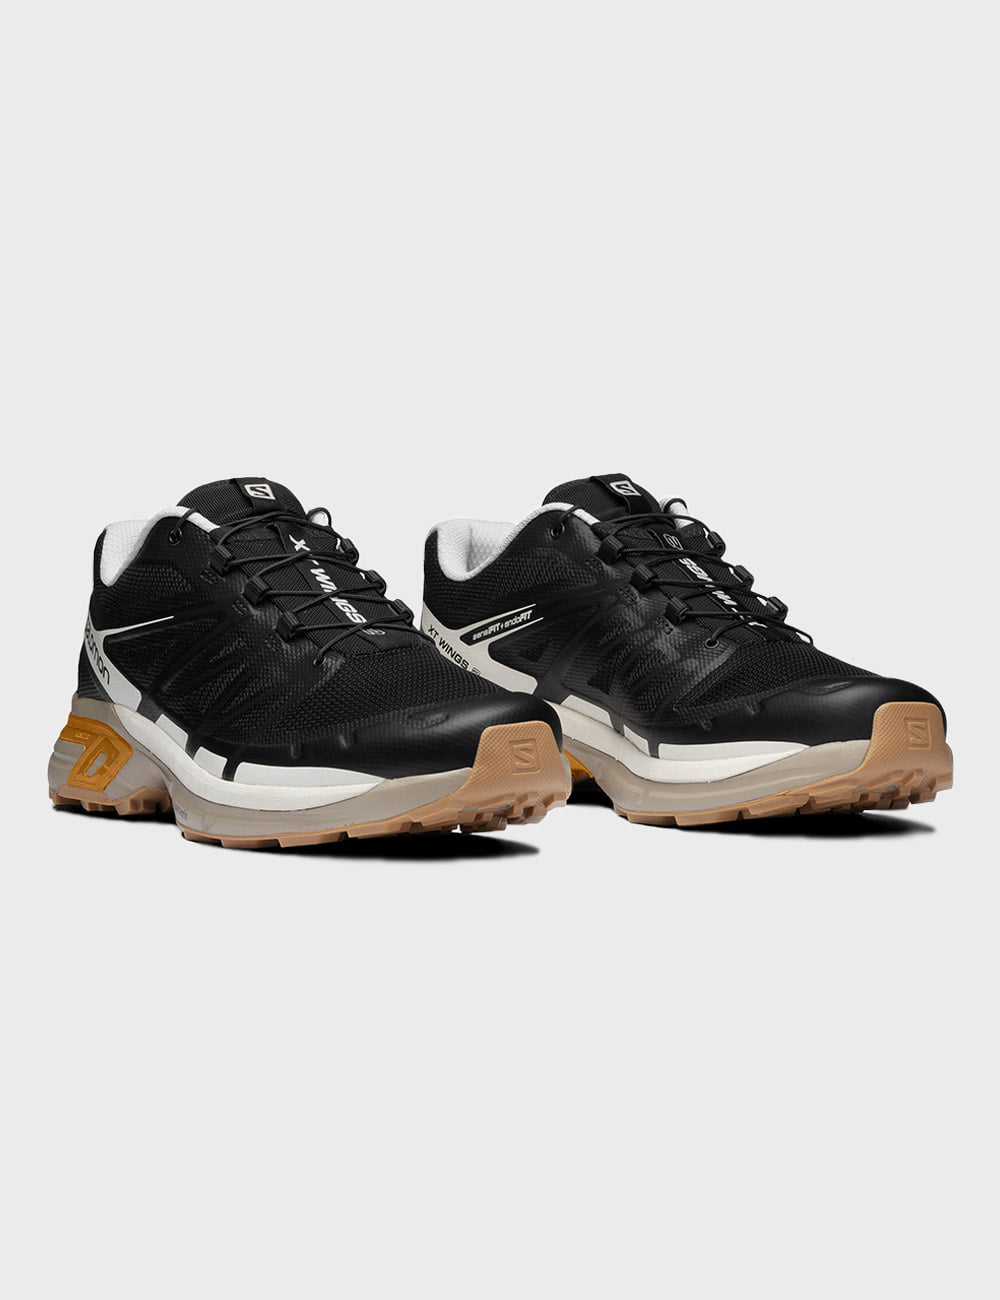 salomon : XT WINGS (BLACK/VINTAGE KHAKI)